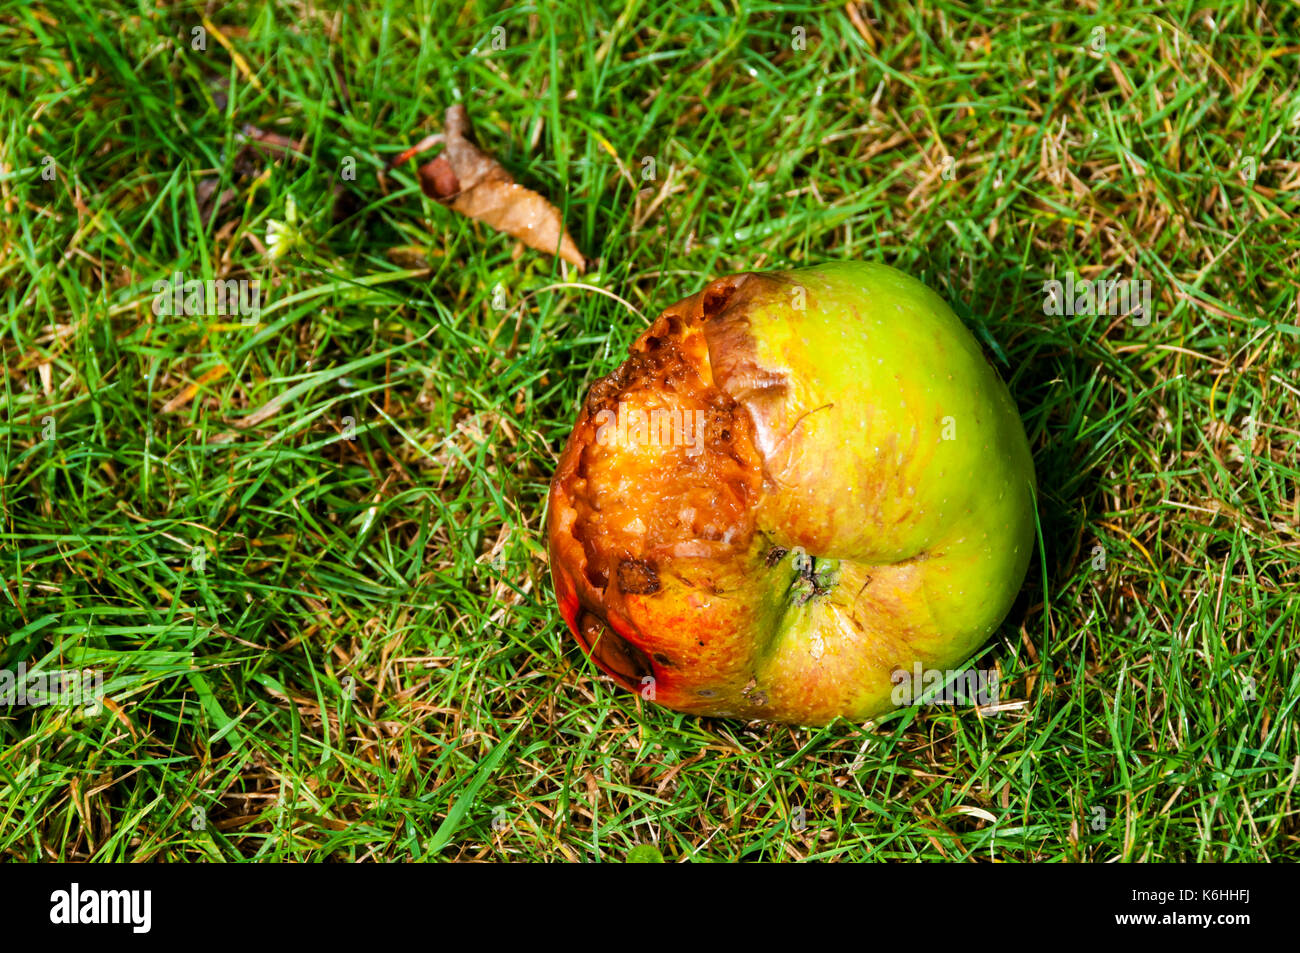 Windfall Bramley apple laying on grass.  It has been partly eaten by birds and is starting to rot. - Stock Image